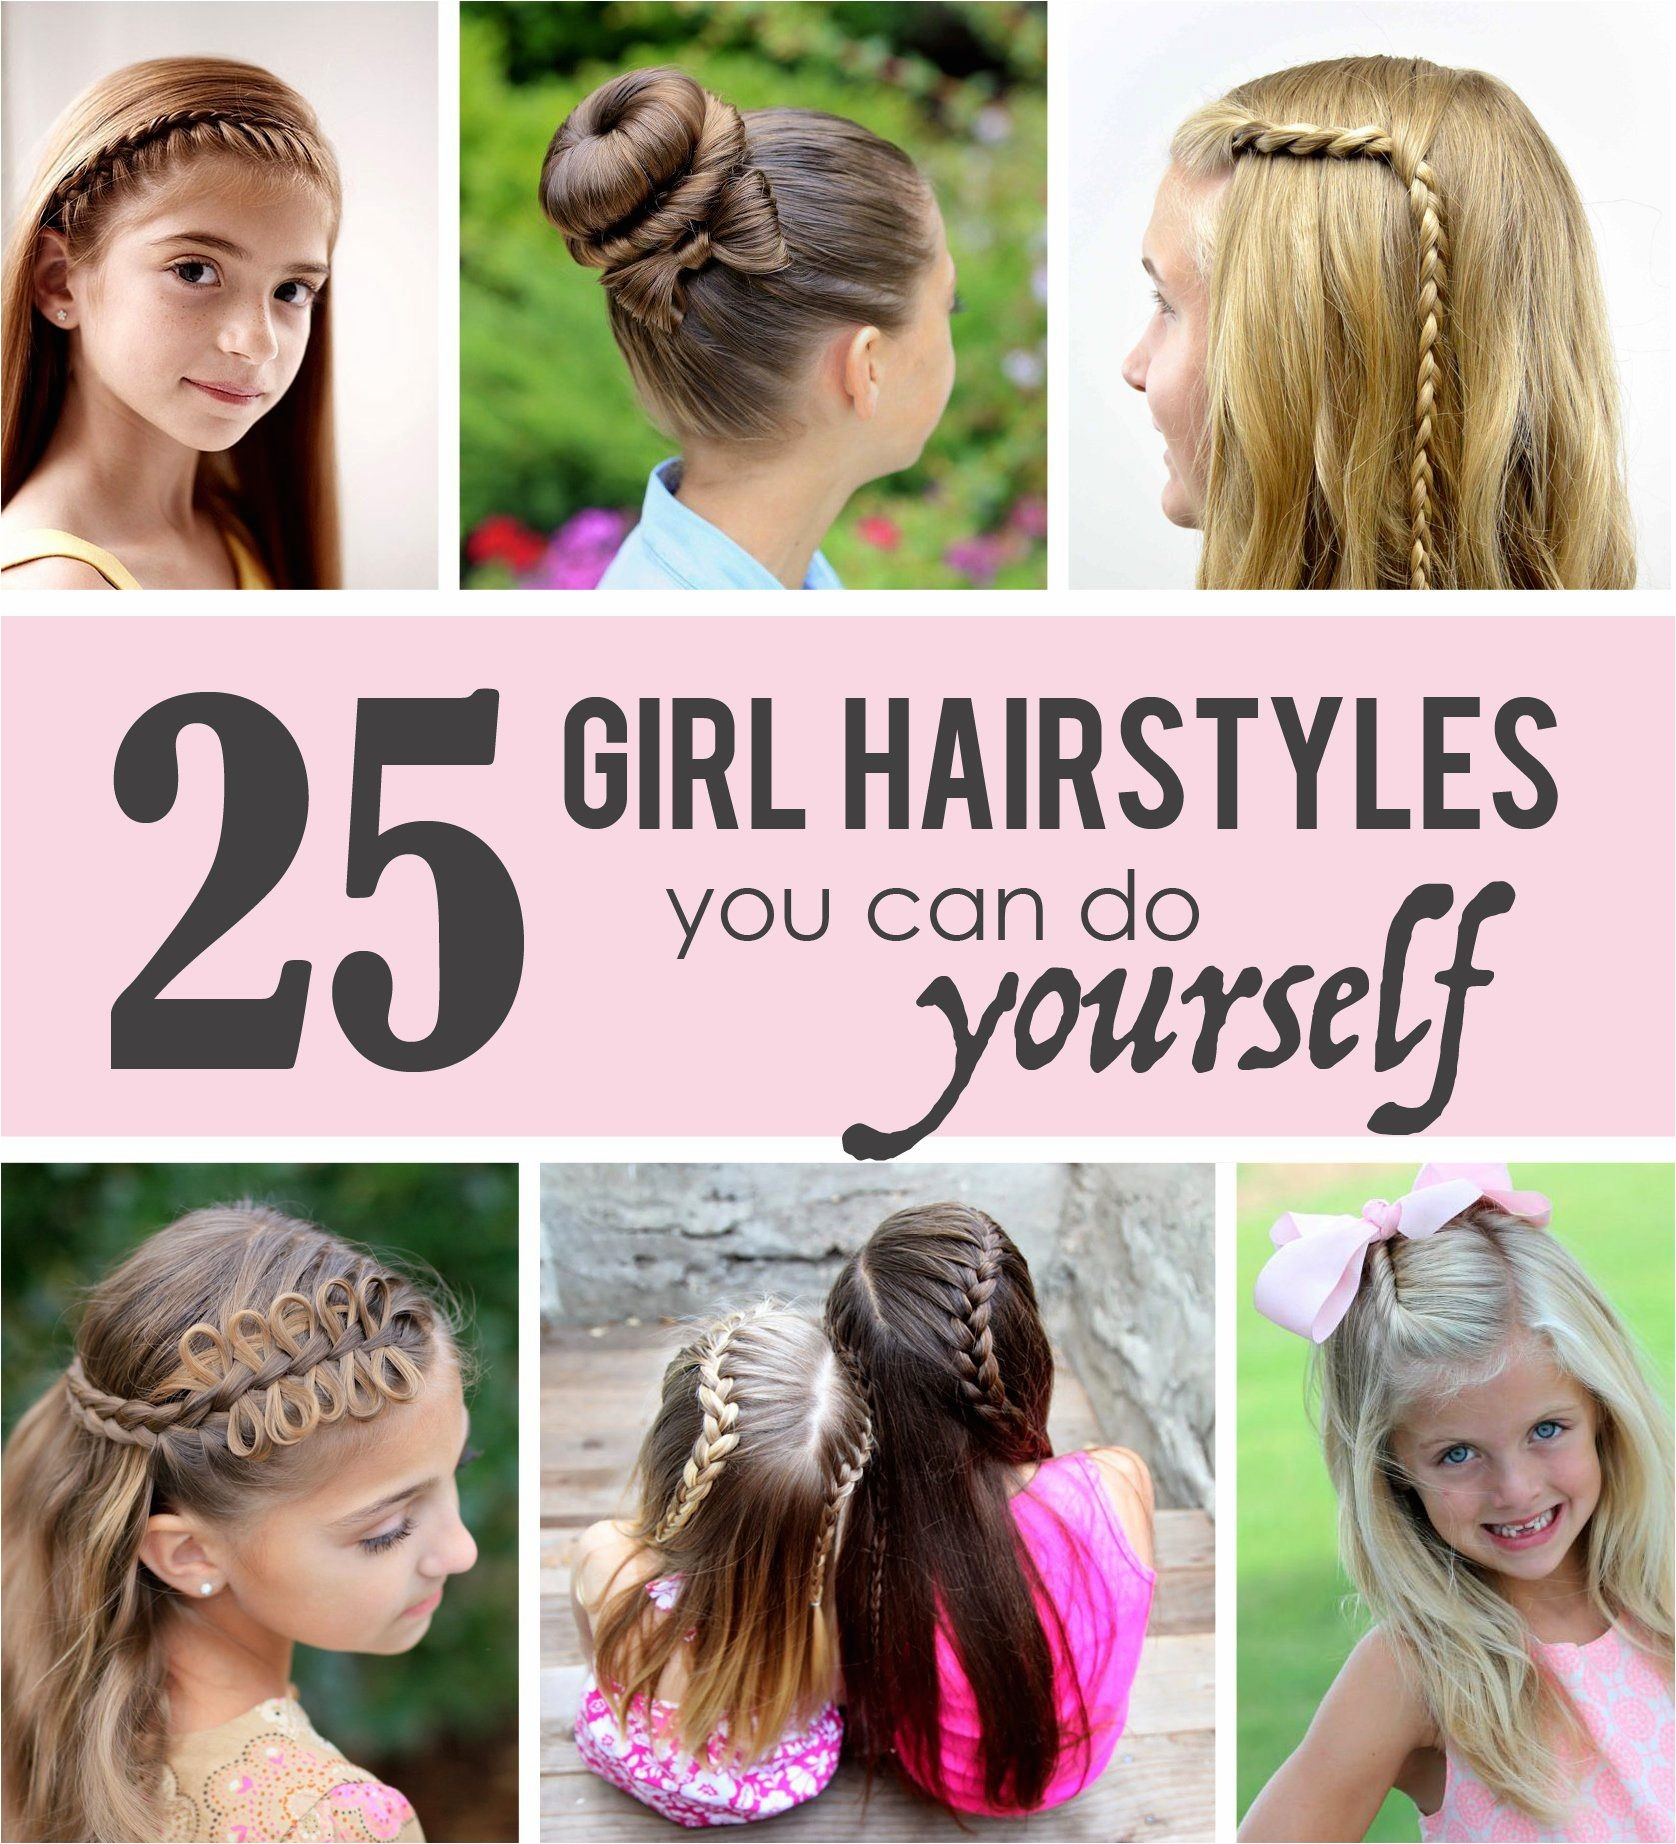 cute hairstyles kids can do